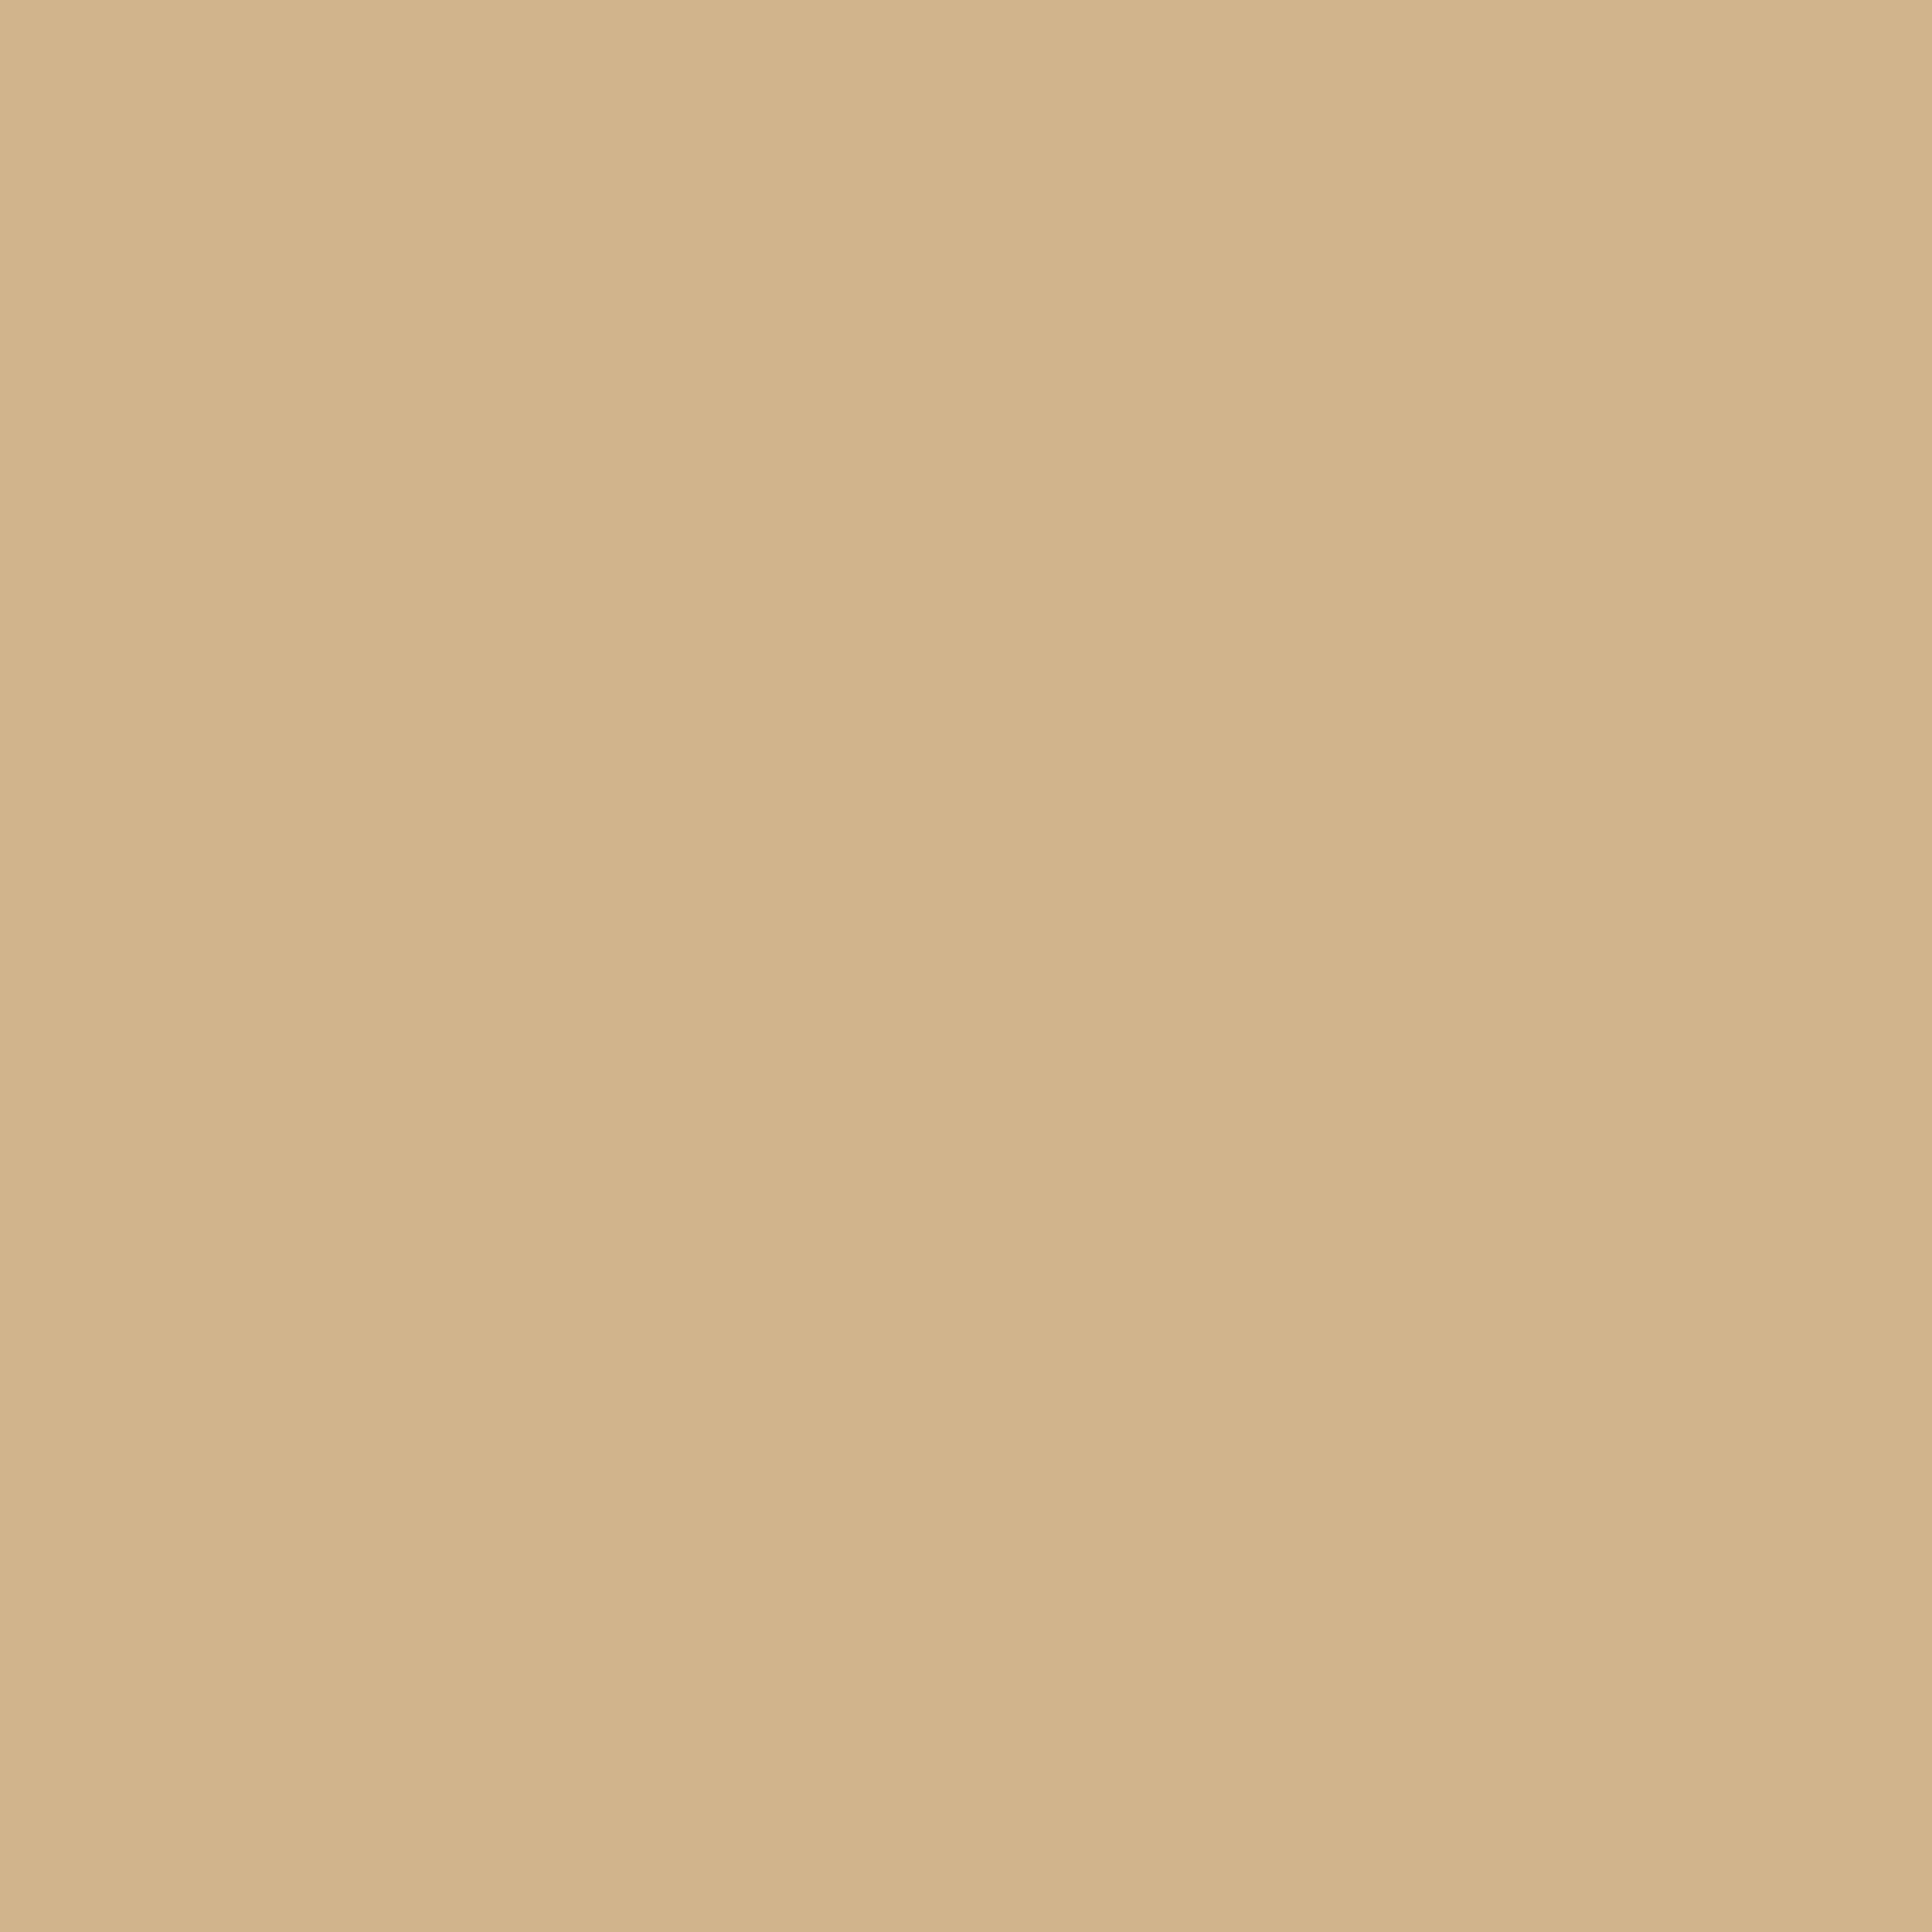 2732x2732 Tan Solid Color Background